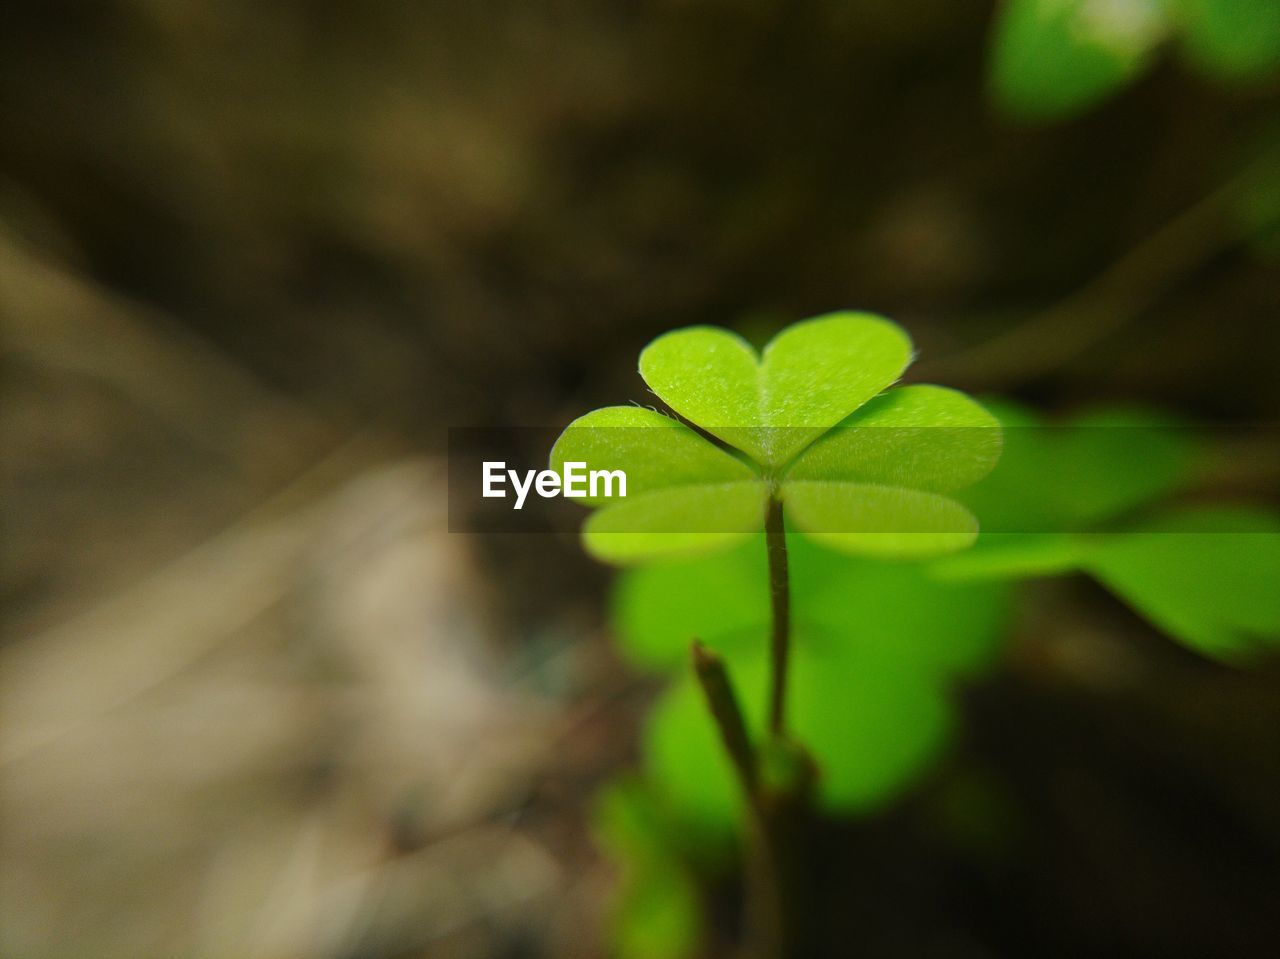 plant part, leaf, green color, close-up, plant, growth, nature, clover, selective focus, day, no people, beauty in nature, focus on foreground, outdoors, vulnerability, fragility, land, field, heart shape, freshness, small